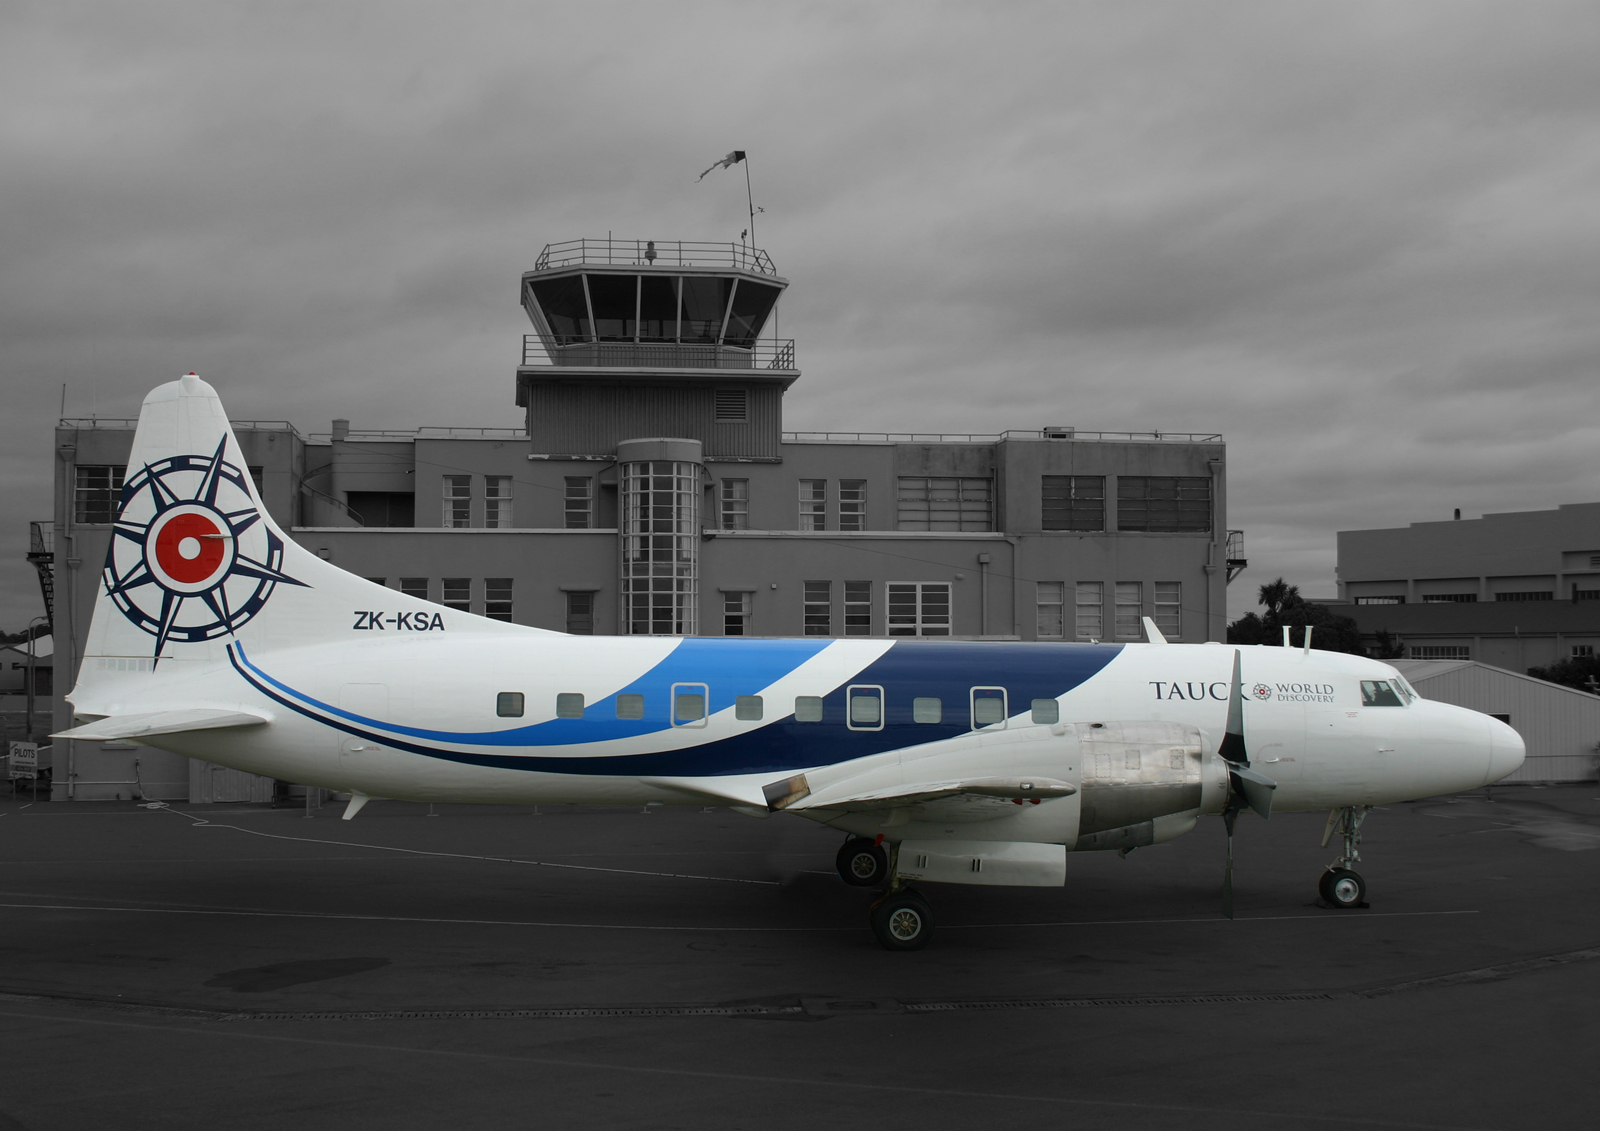 Side elevation, Convair CV580 ZK-KSA, inaugural flight, Palmerston North to Wigram Airfield Christchurch, newly refurbished and sporting the new specialised Pionair aircraft 'fluid' livery'.